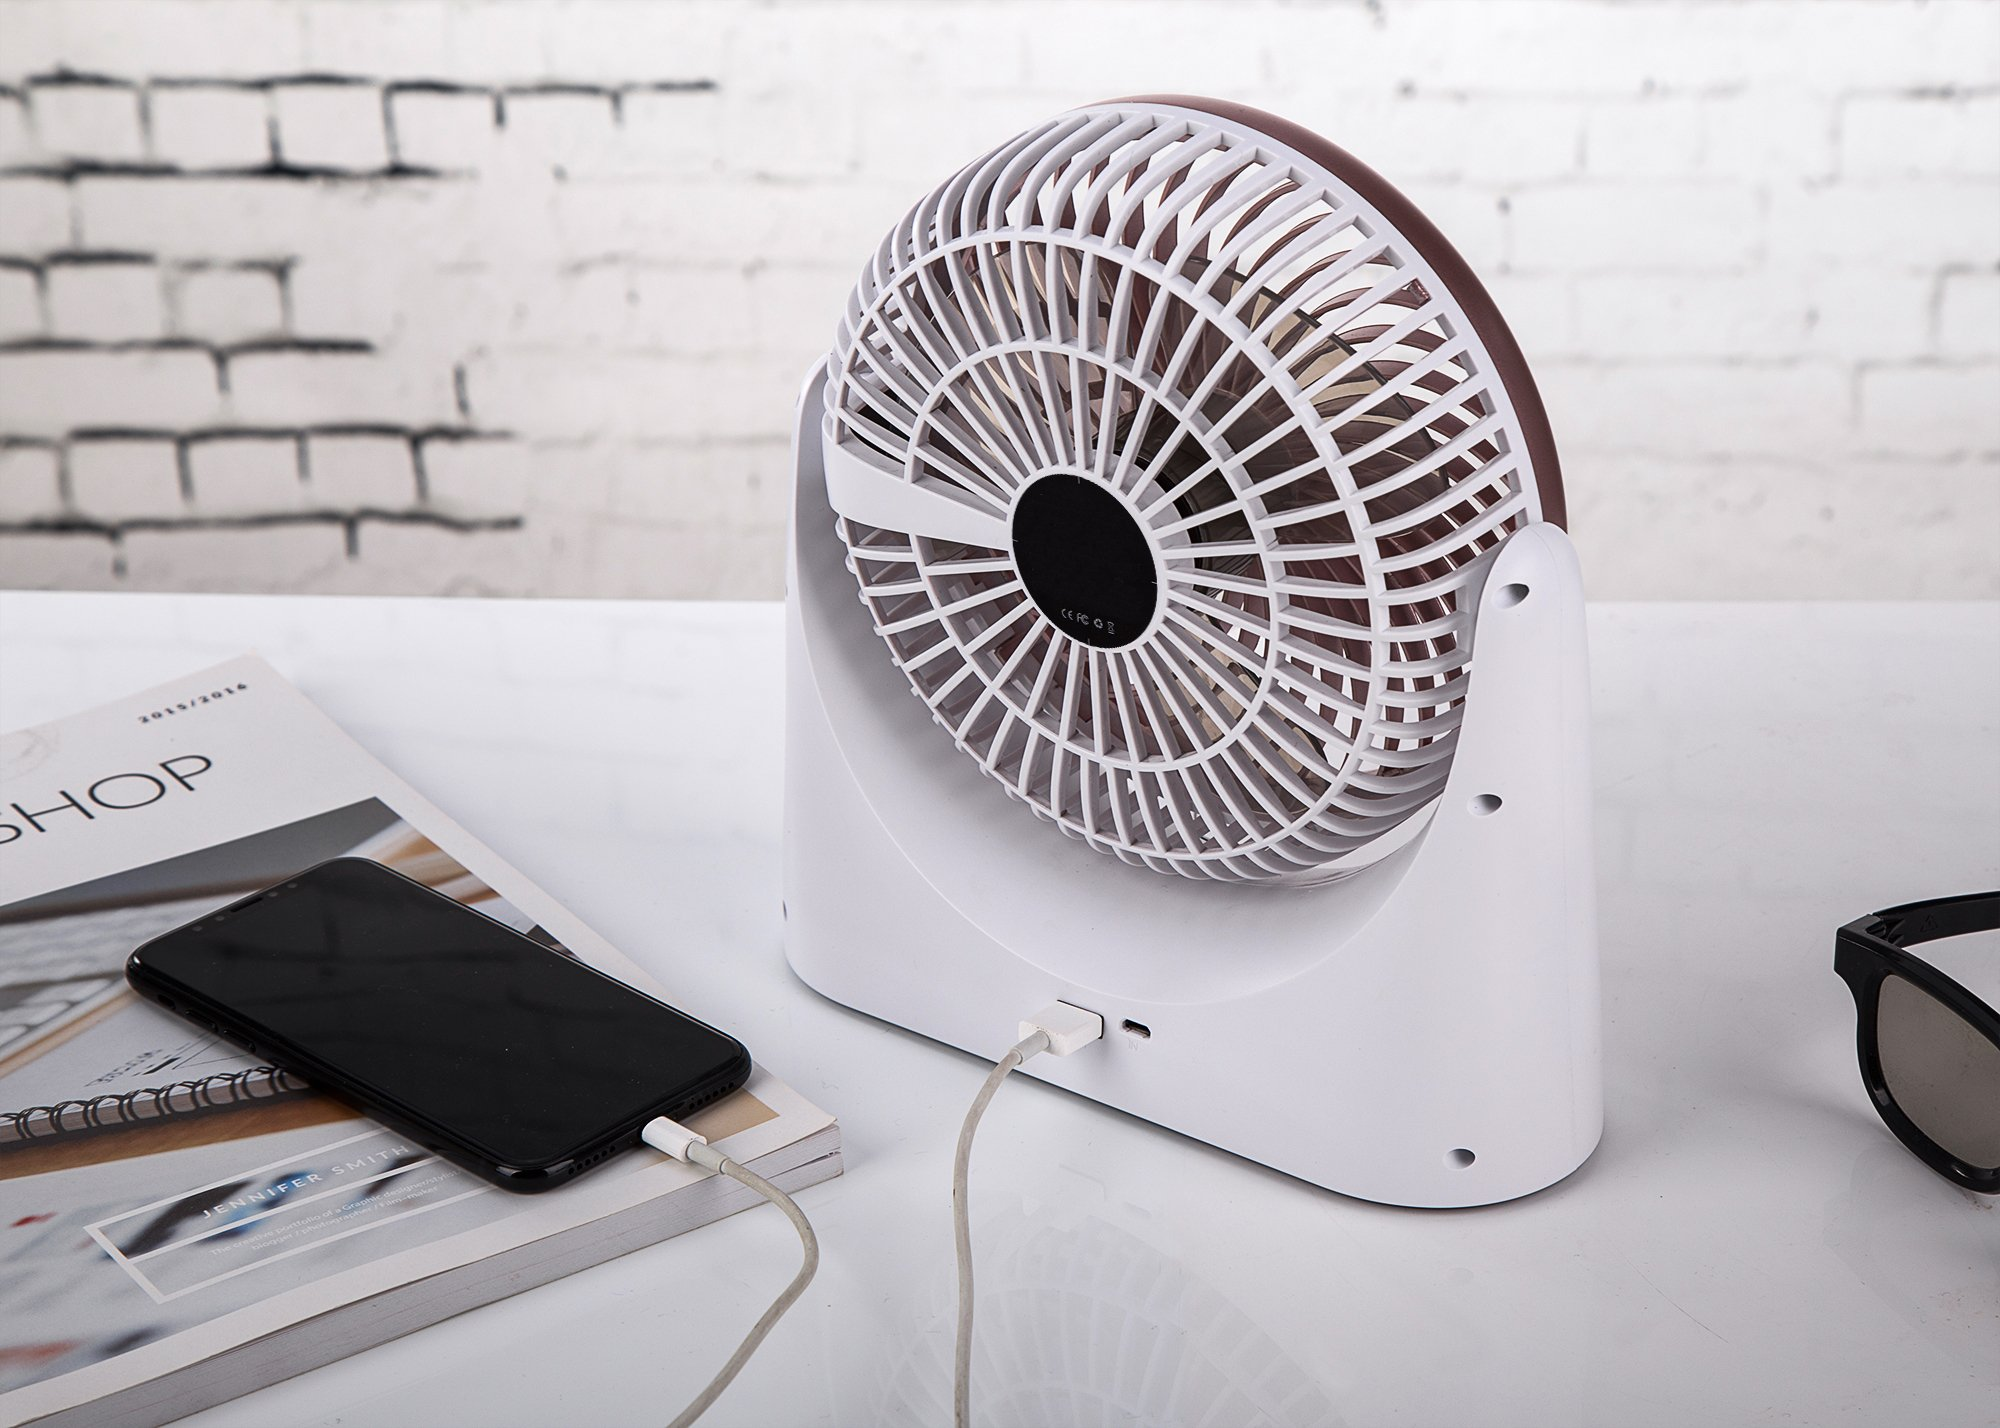 HCMAOE Mini USB Table Desk Personal Portable Air Circulator Fan 3 Speed, Lower Noise, Powered by USB or 4000mAh Rechargeable 18650 Battery with Power bank Function, Side LED Light for Office, (Silver) by HCMAOE (Image #5)